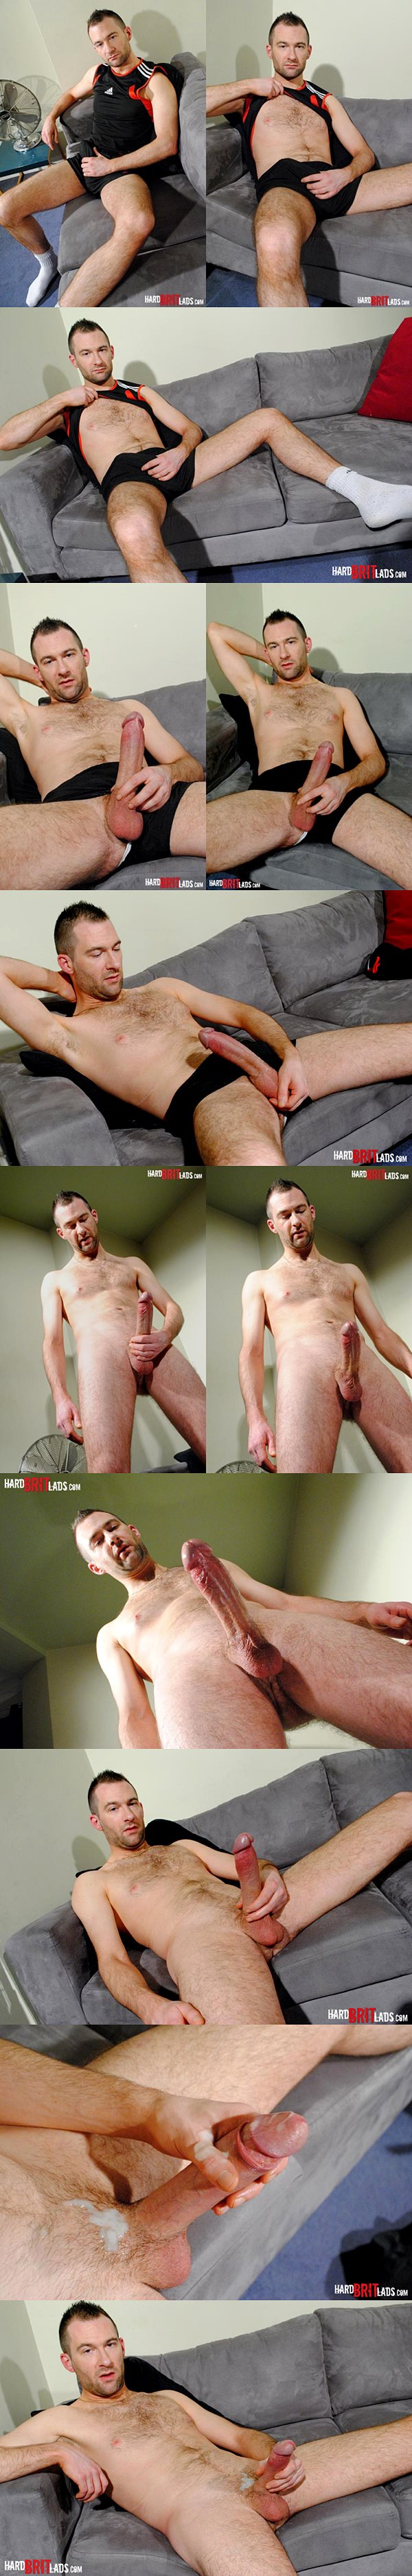 Big-dicked straight guy Ed P blows a sticky load at Hardbritlads